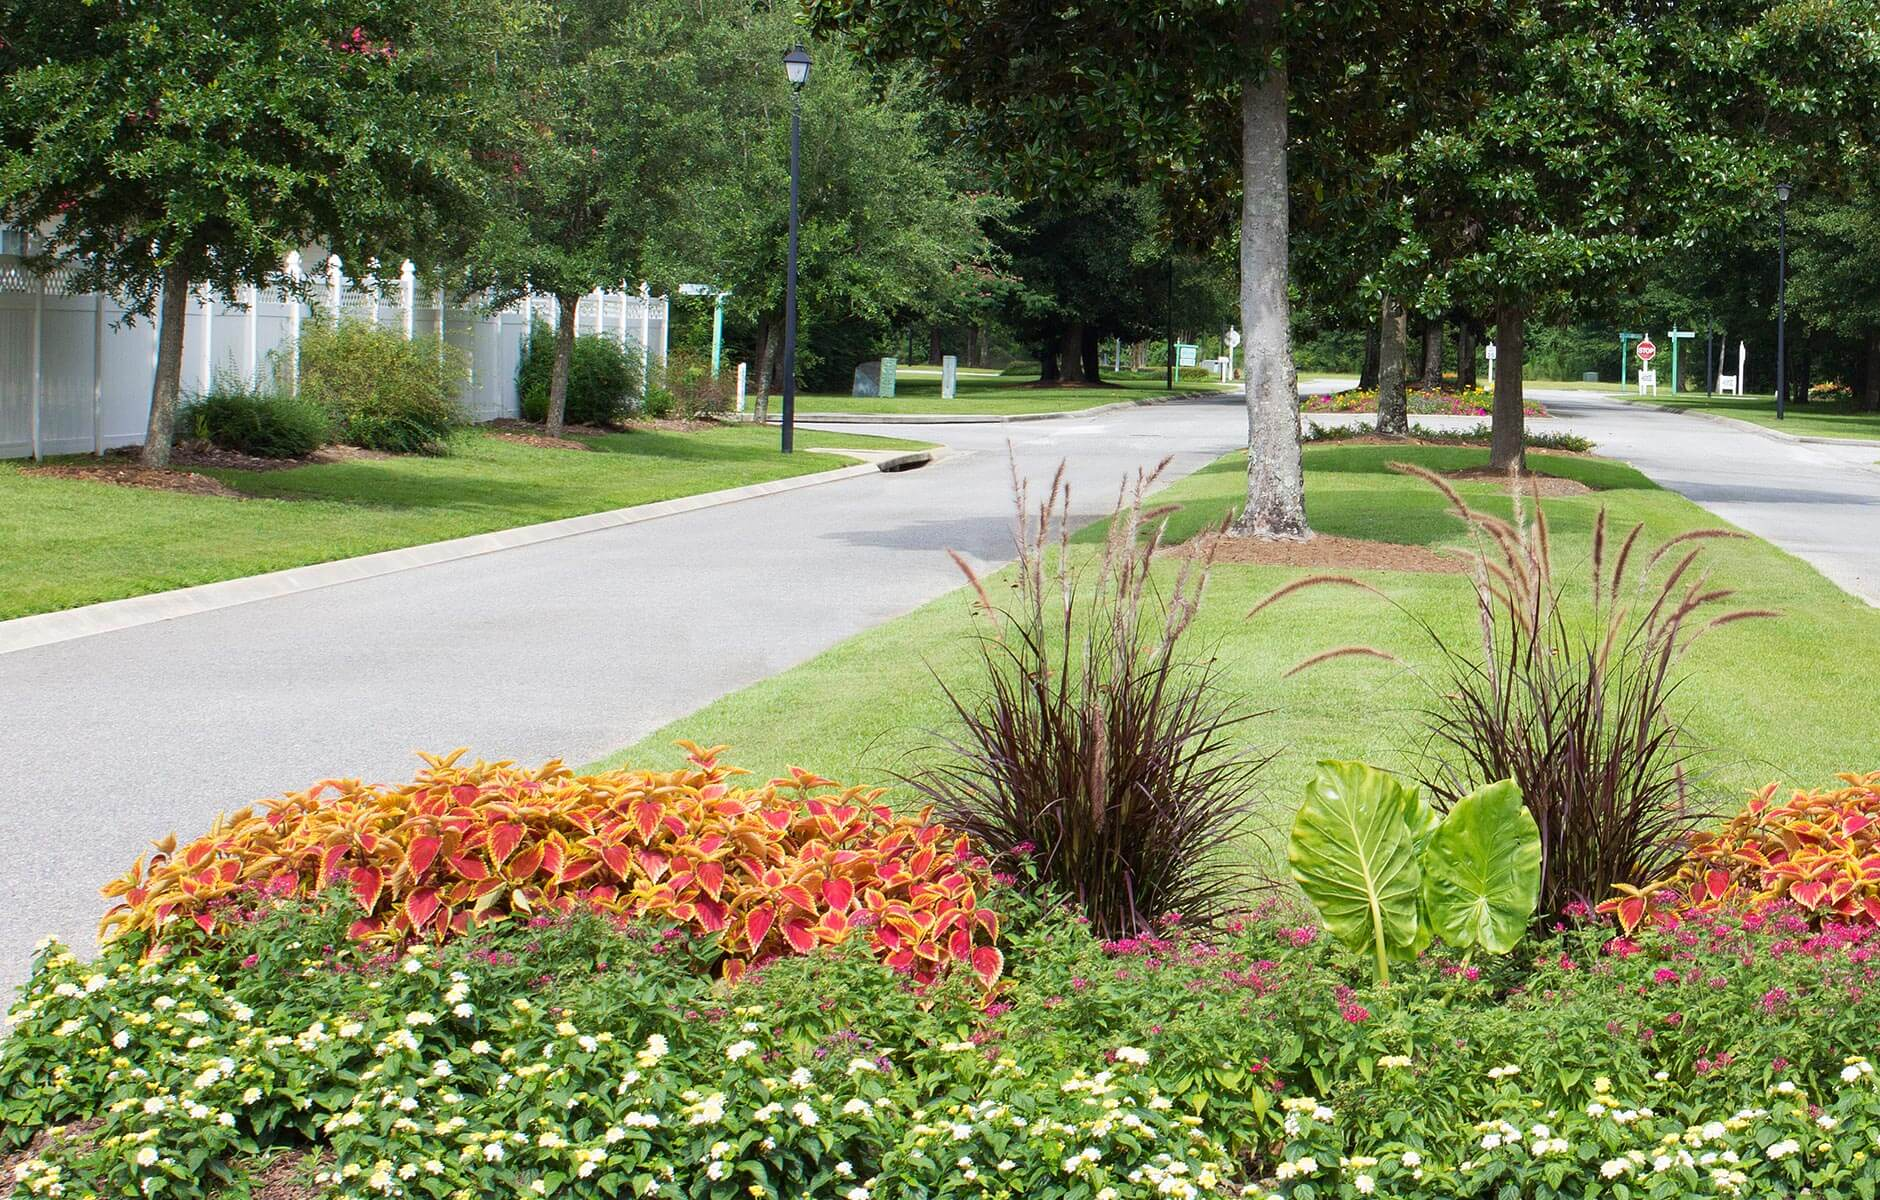 Colorful flower combination and fresh cut grass in this neighborhood island